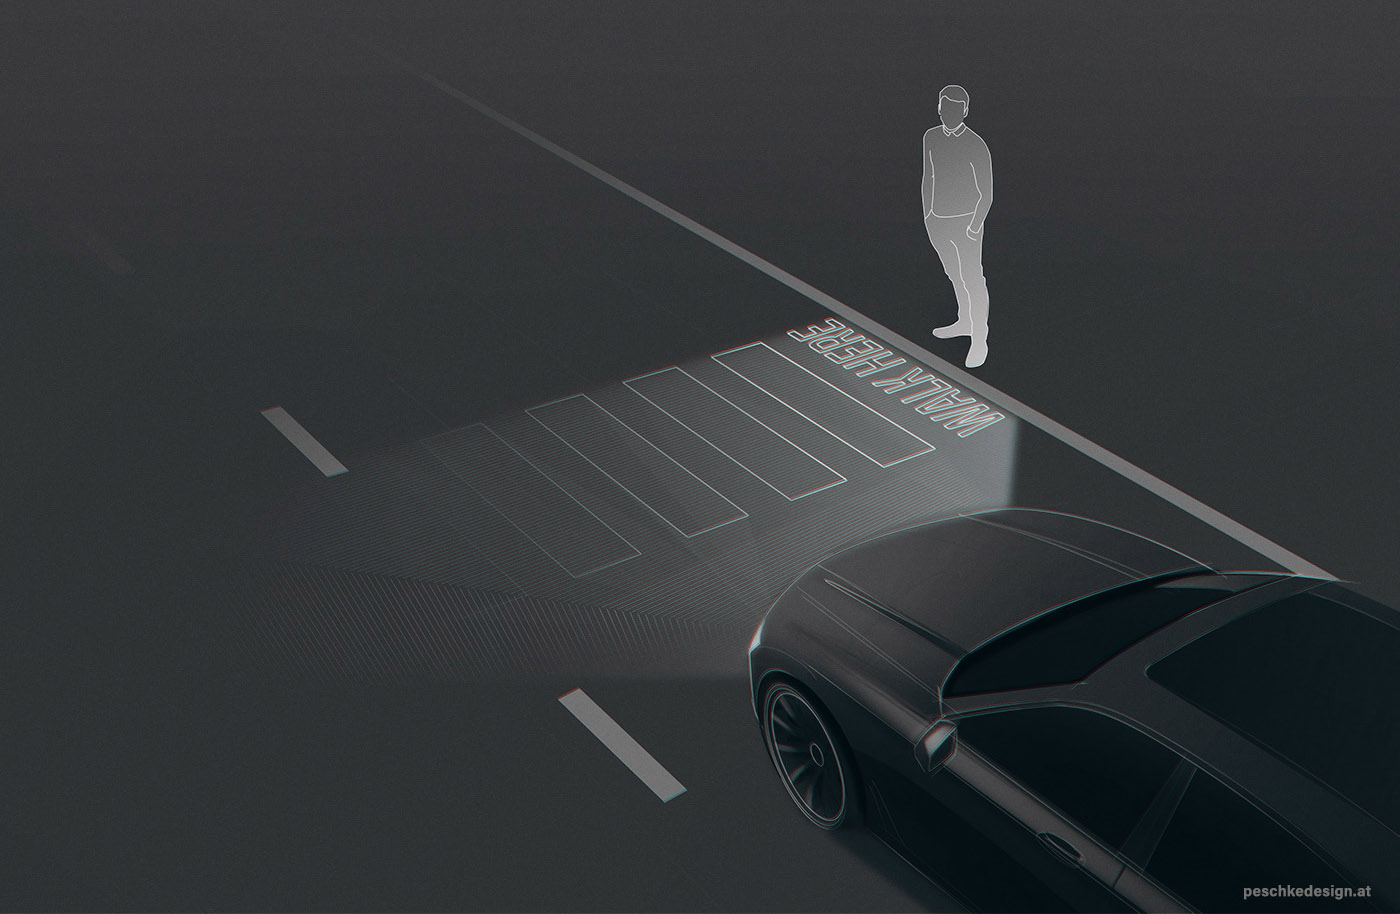 A smart headlight projects a pedestrian crossing onto the tarmac.